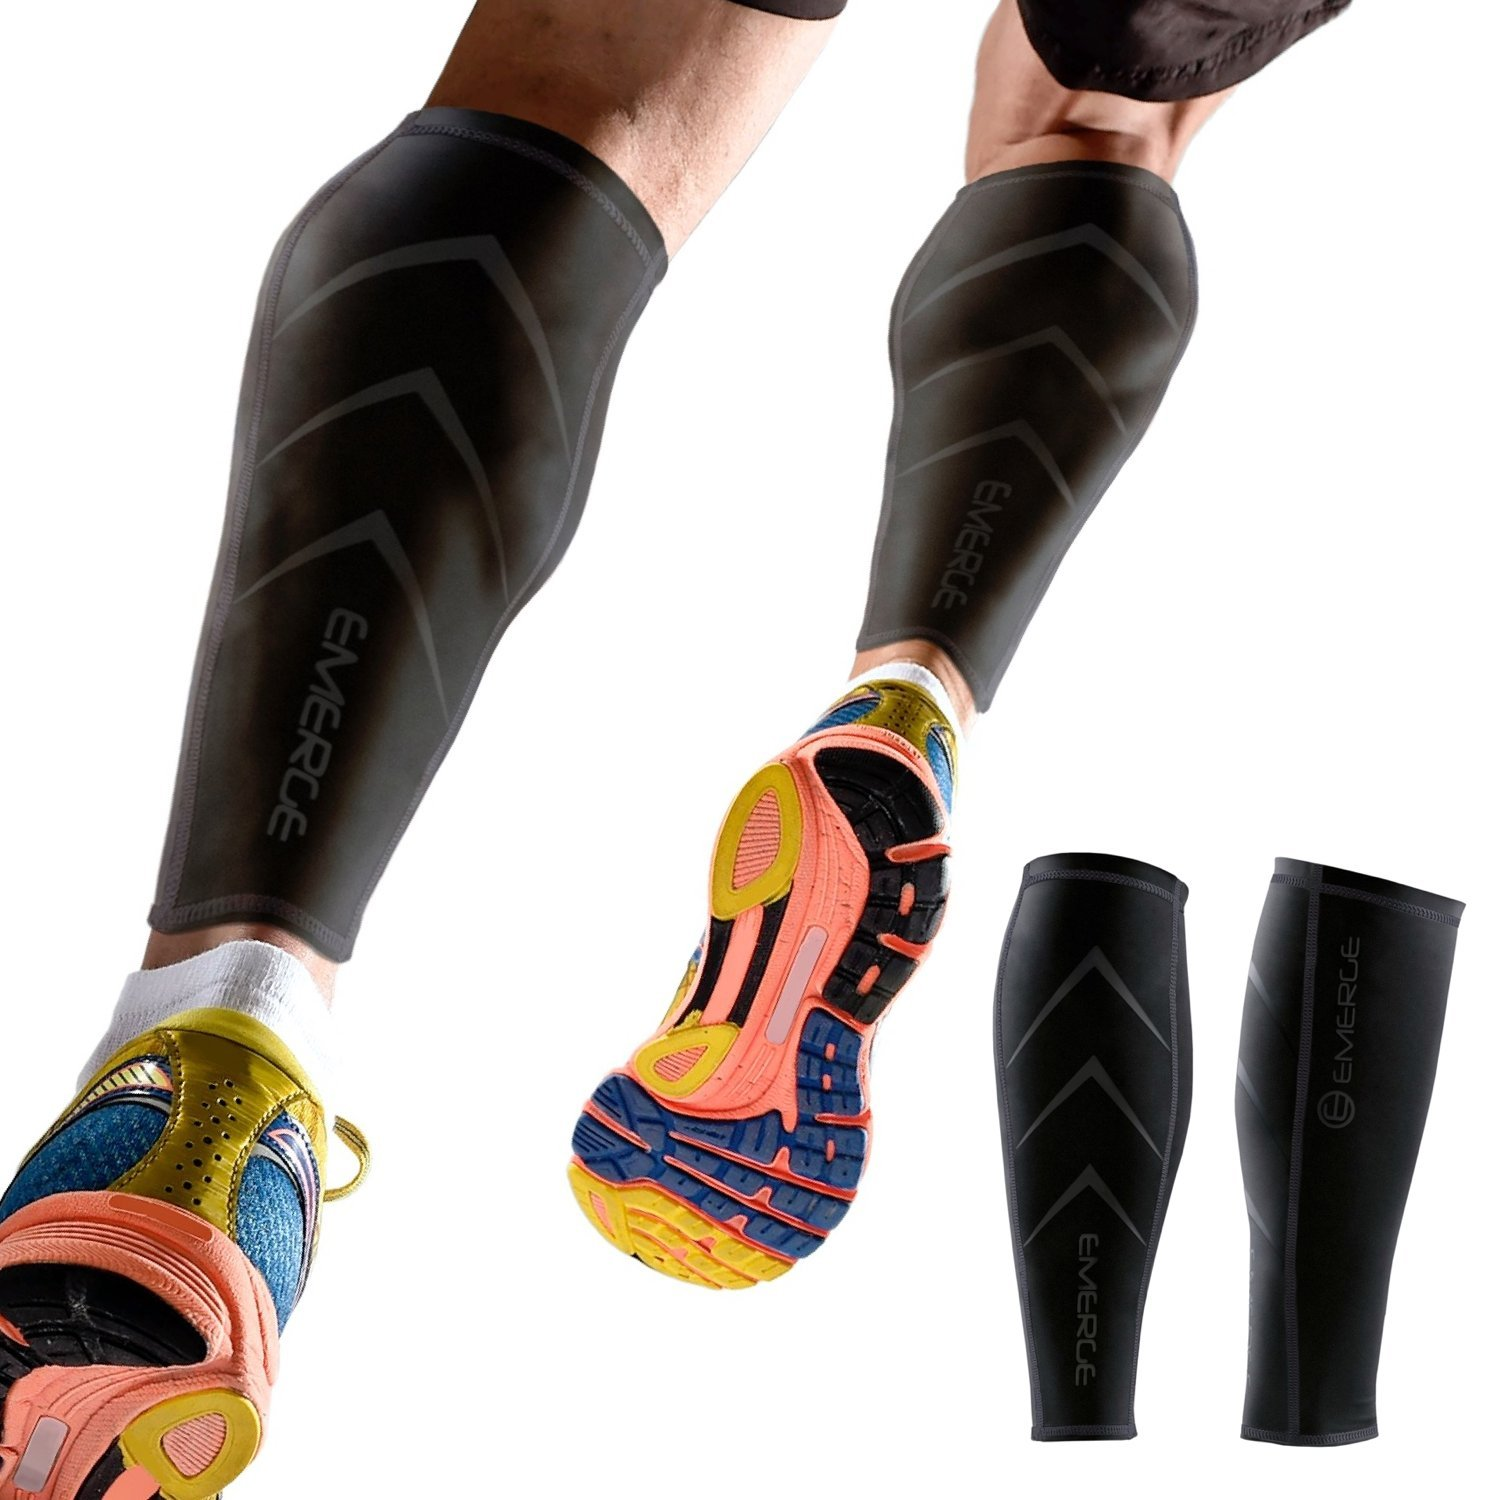 Wear Calf Compression Sleeves